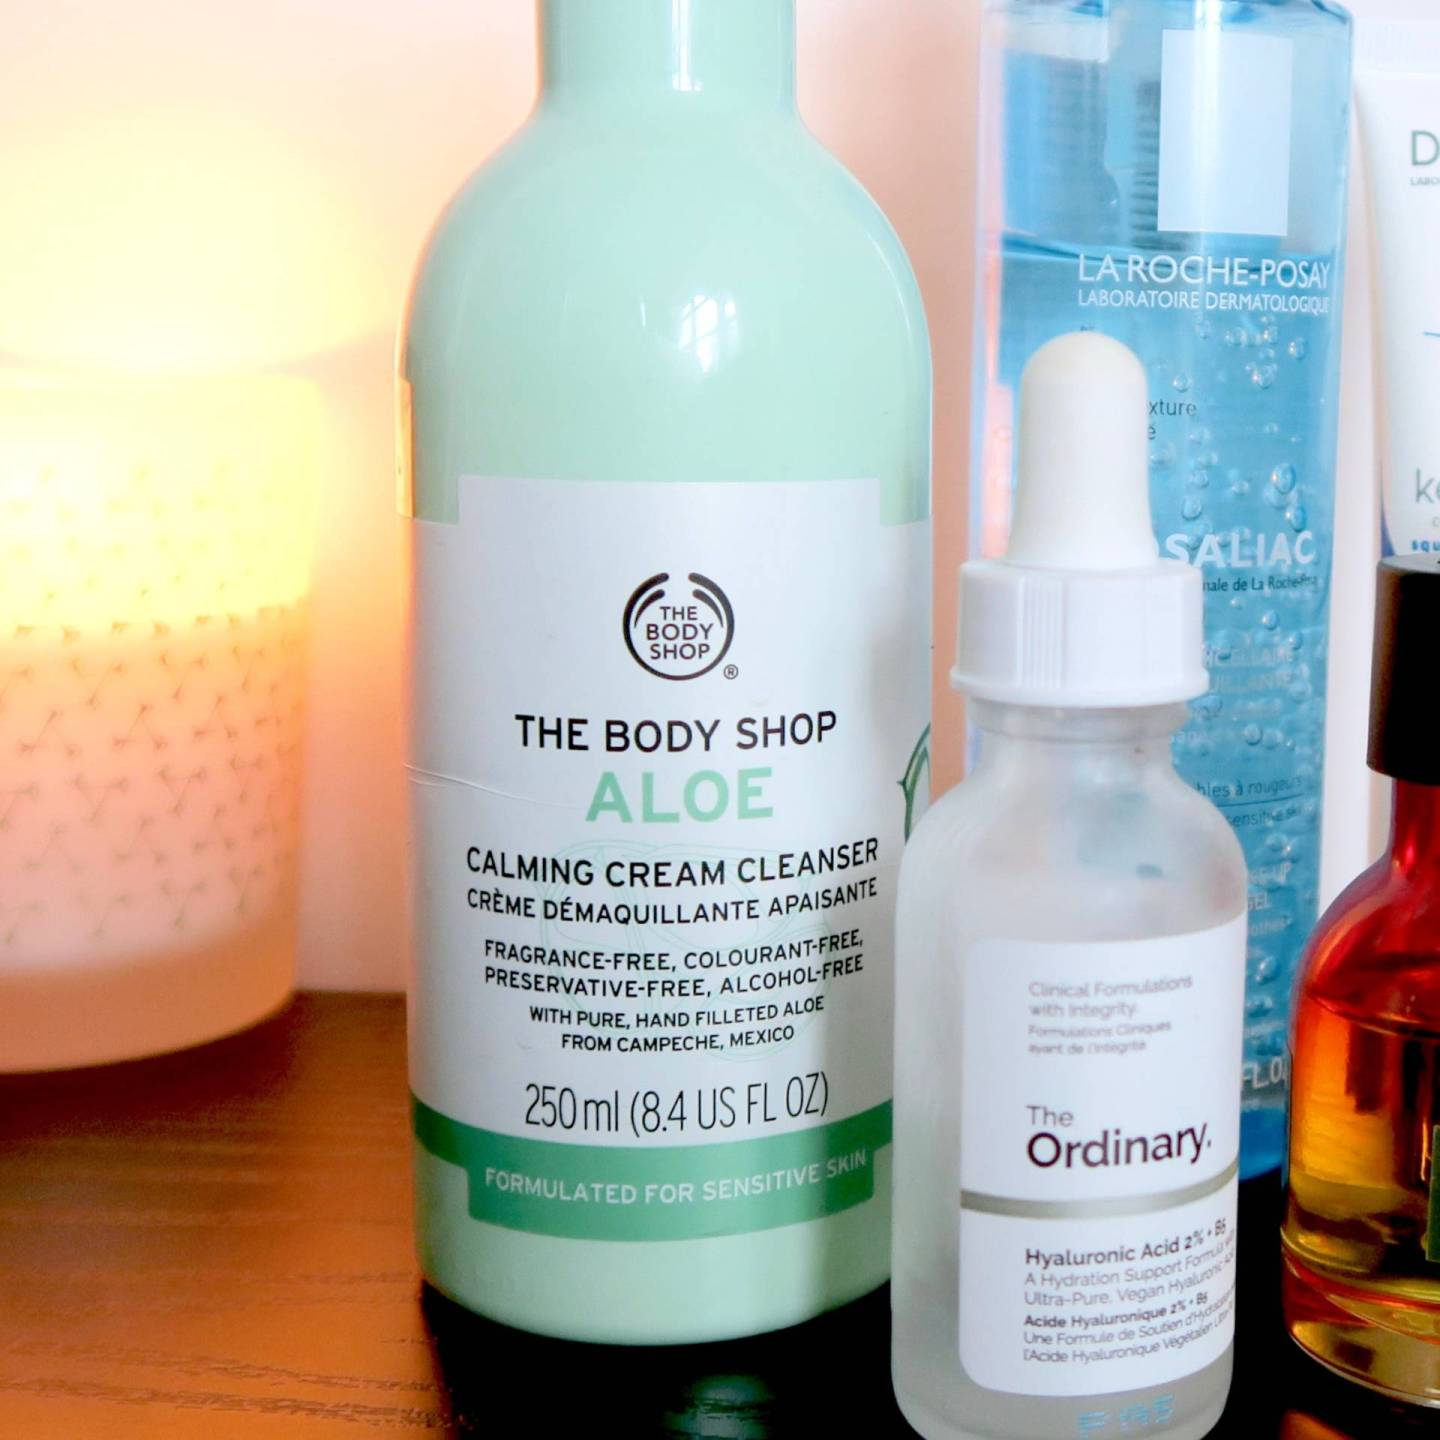 Skincare for rosacea and sensitive skin - The Body Shop Aloe Calming Cream Cleanser